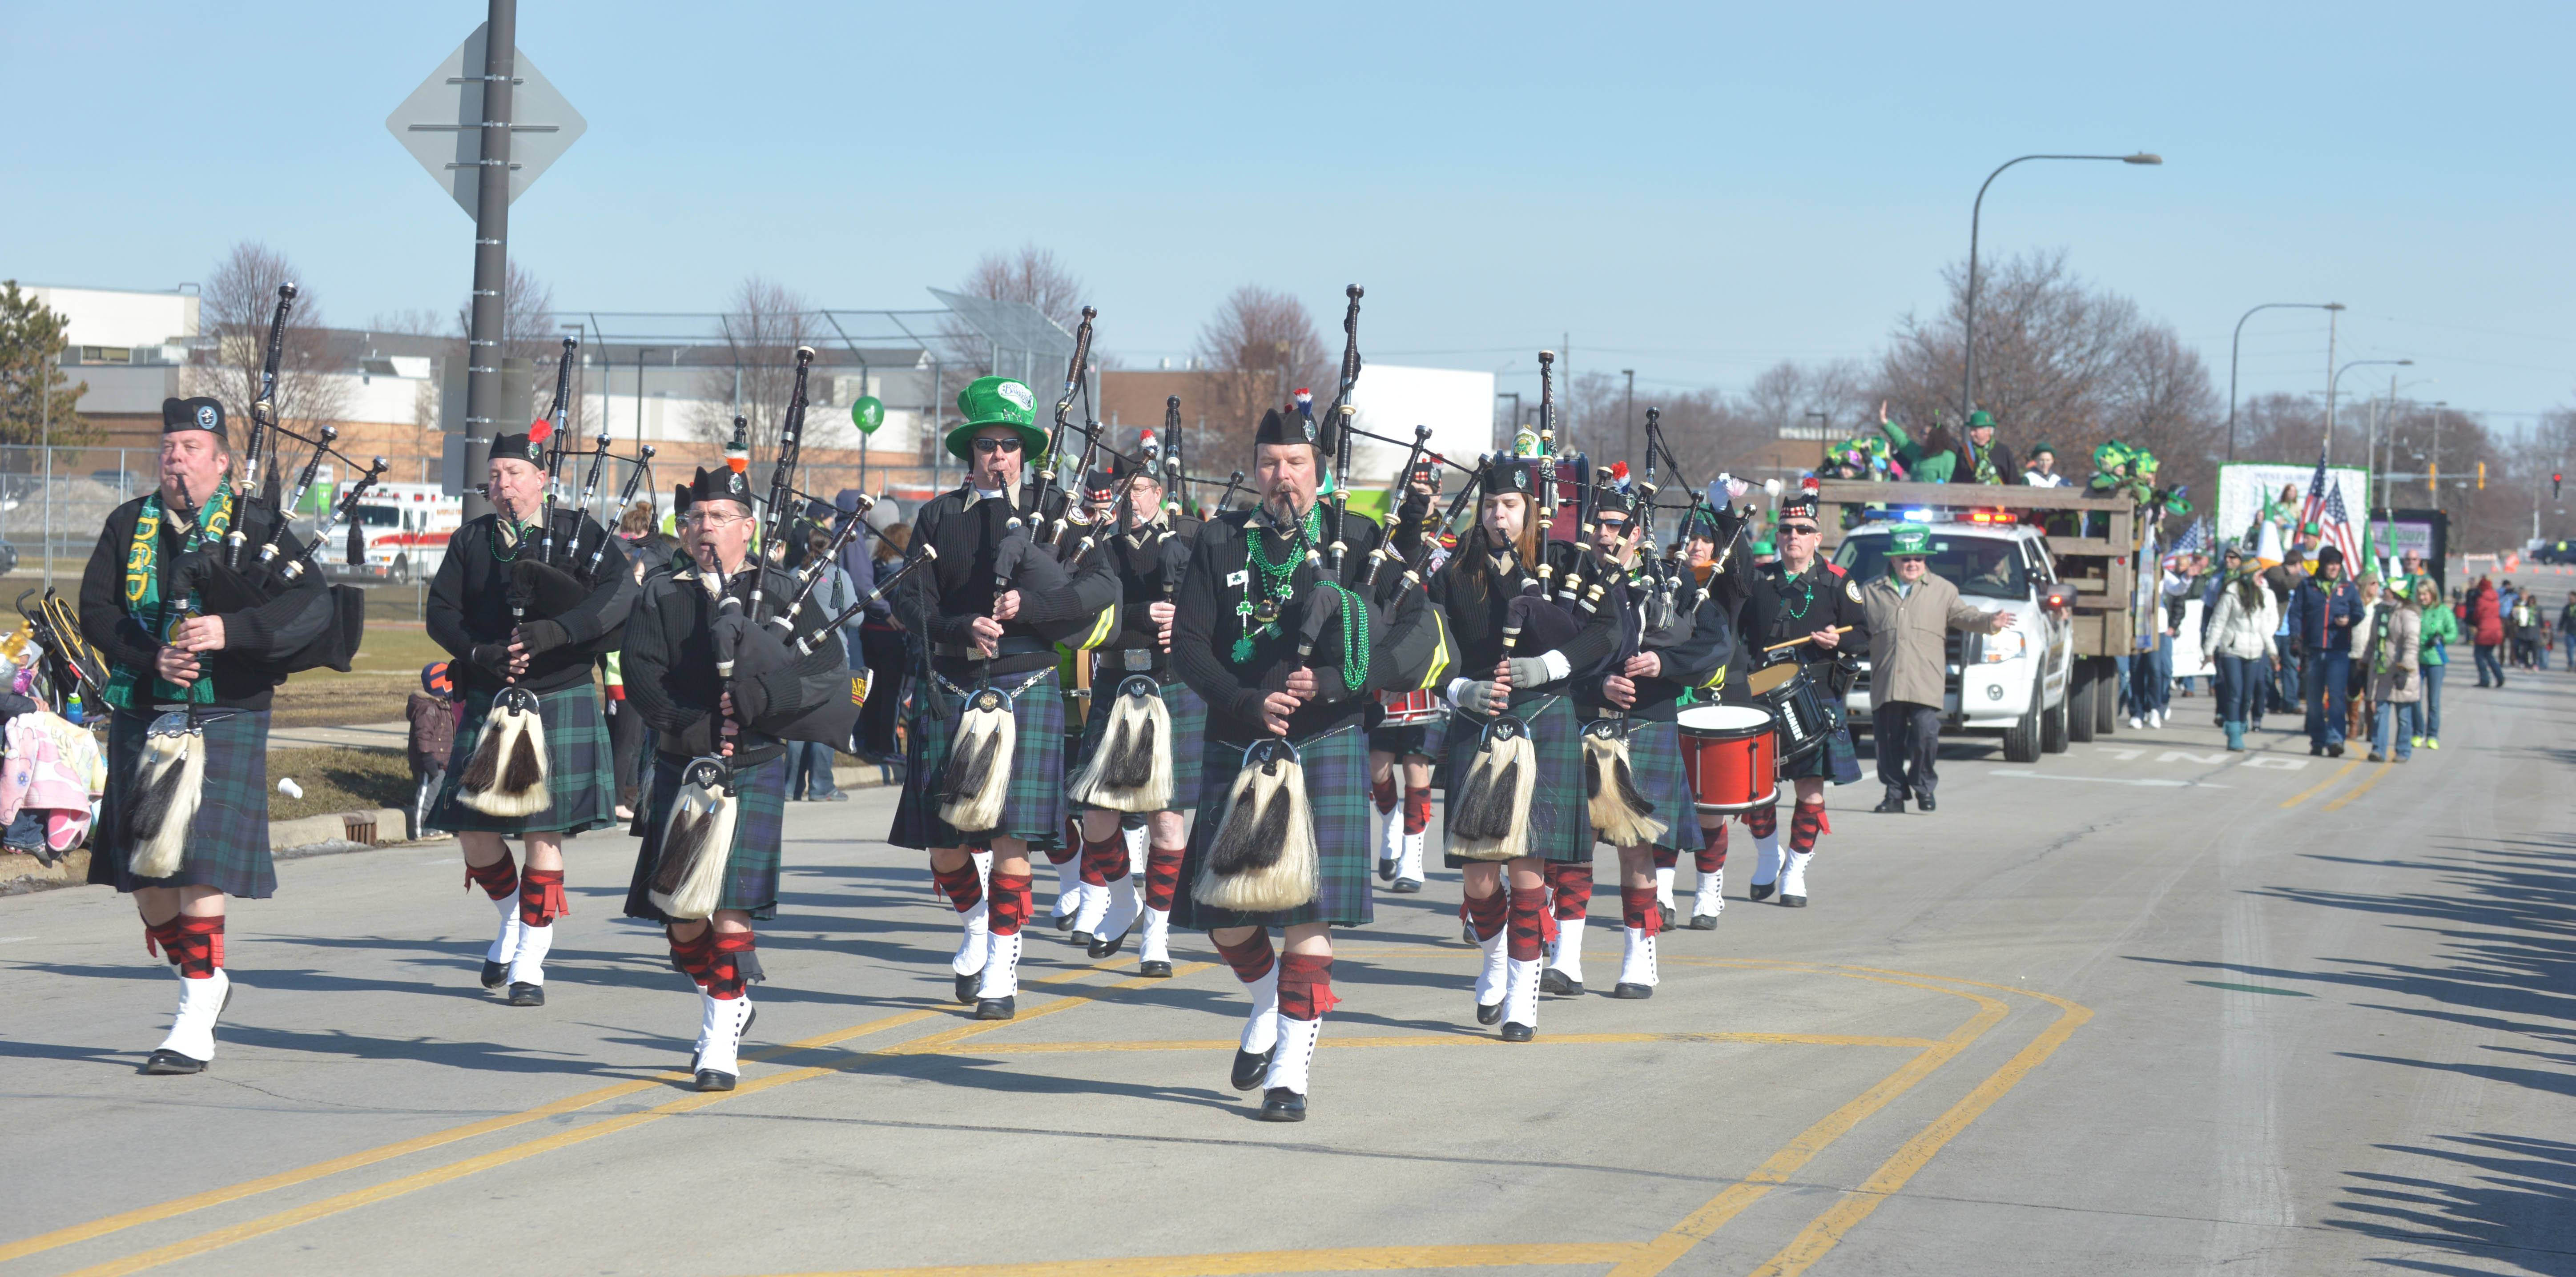 The annual West Suburban Irish St. Patrick's Day Parade took place in Naperville Saturday.